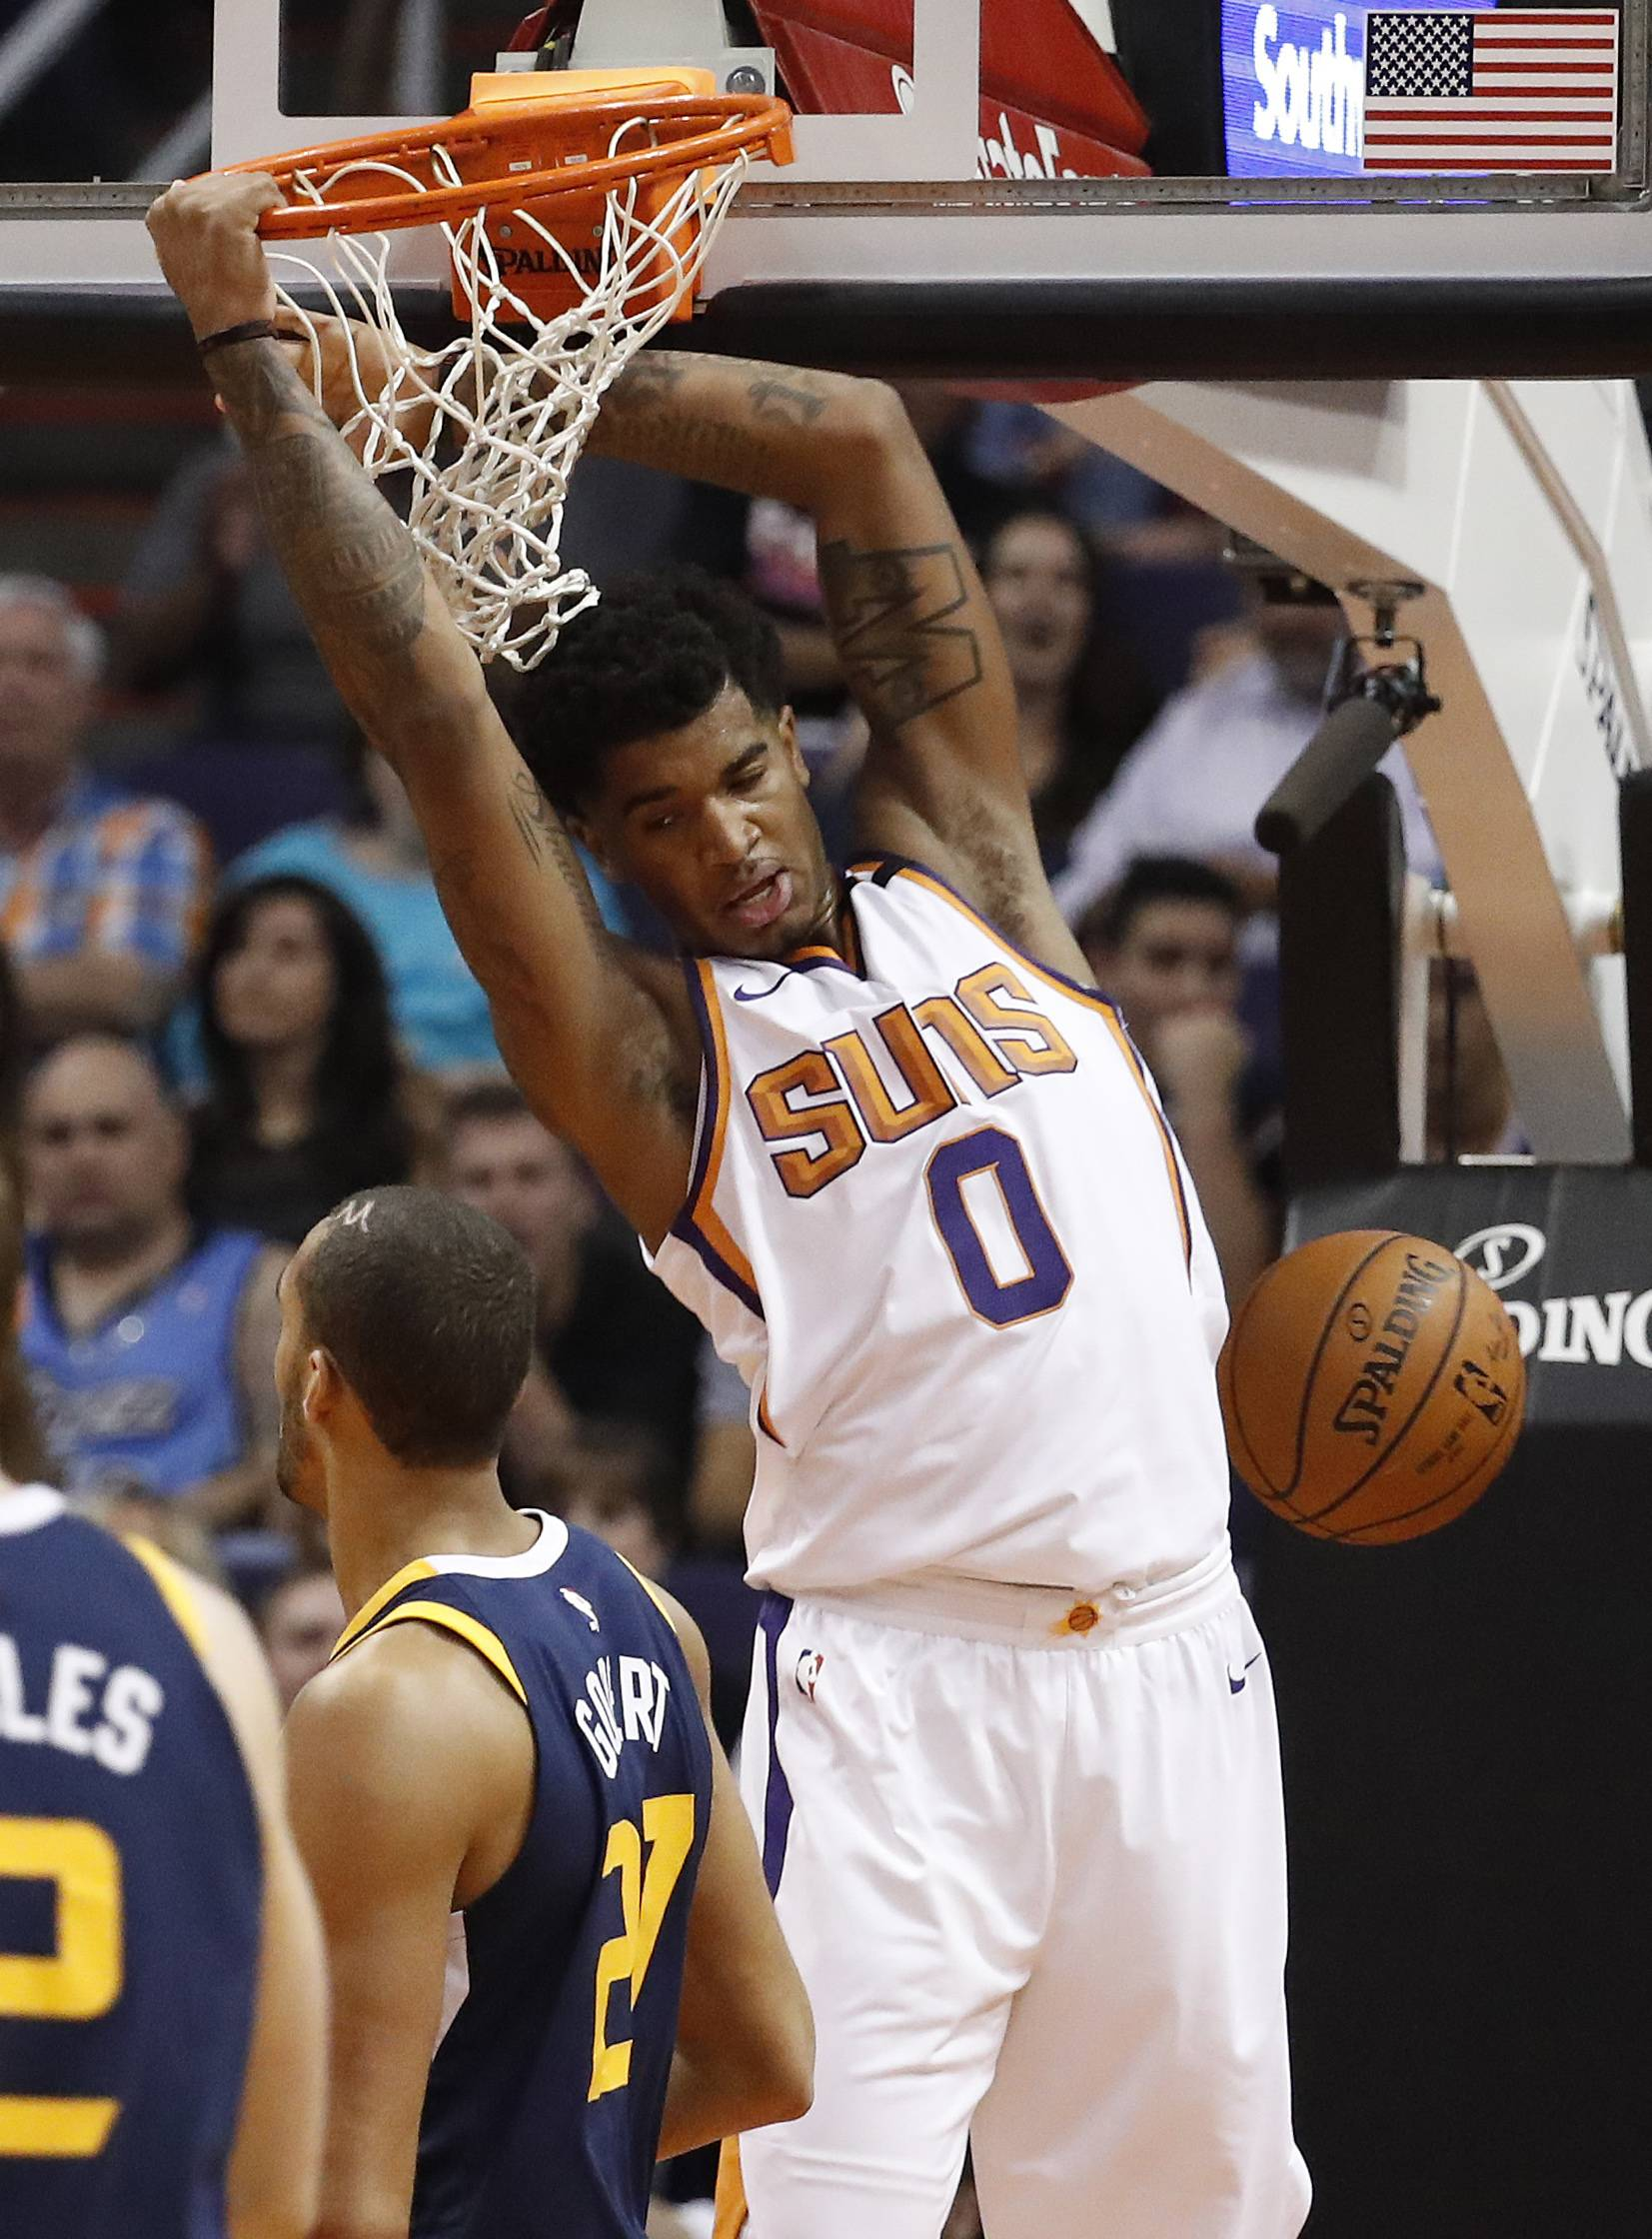 000f3a0c5bc PHOENIX (AP) — T. J. Warren scored 20 of his 27 points in the second half  and the energetic Phoenix Suns improved to 2-0 under new interim coach Jay  Triano ...